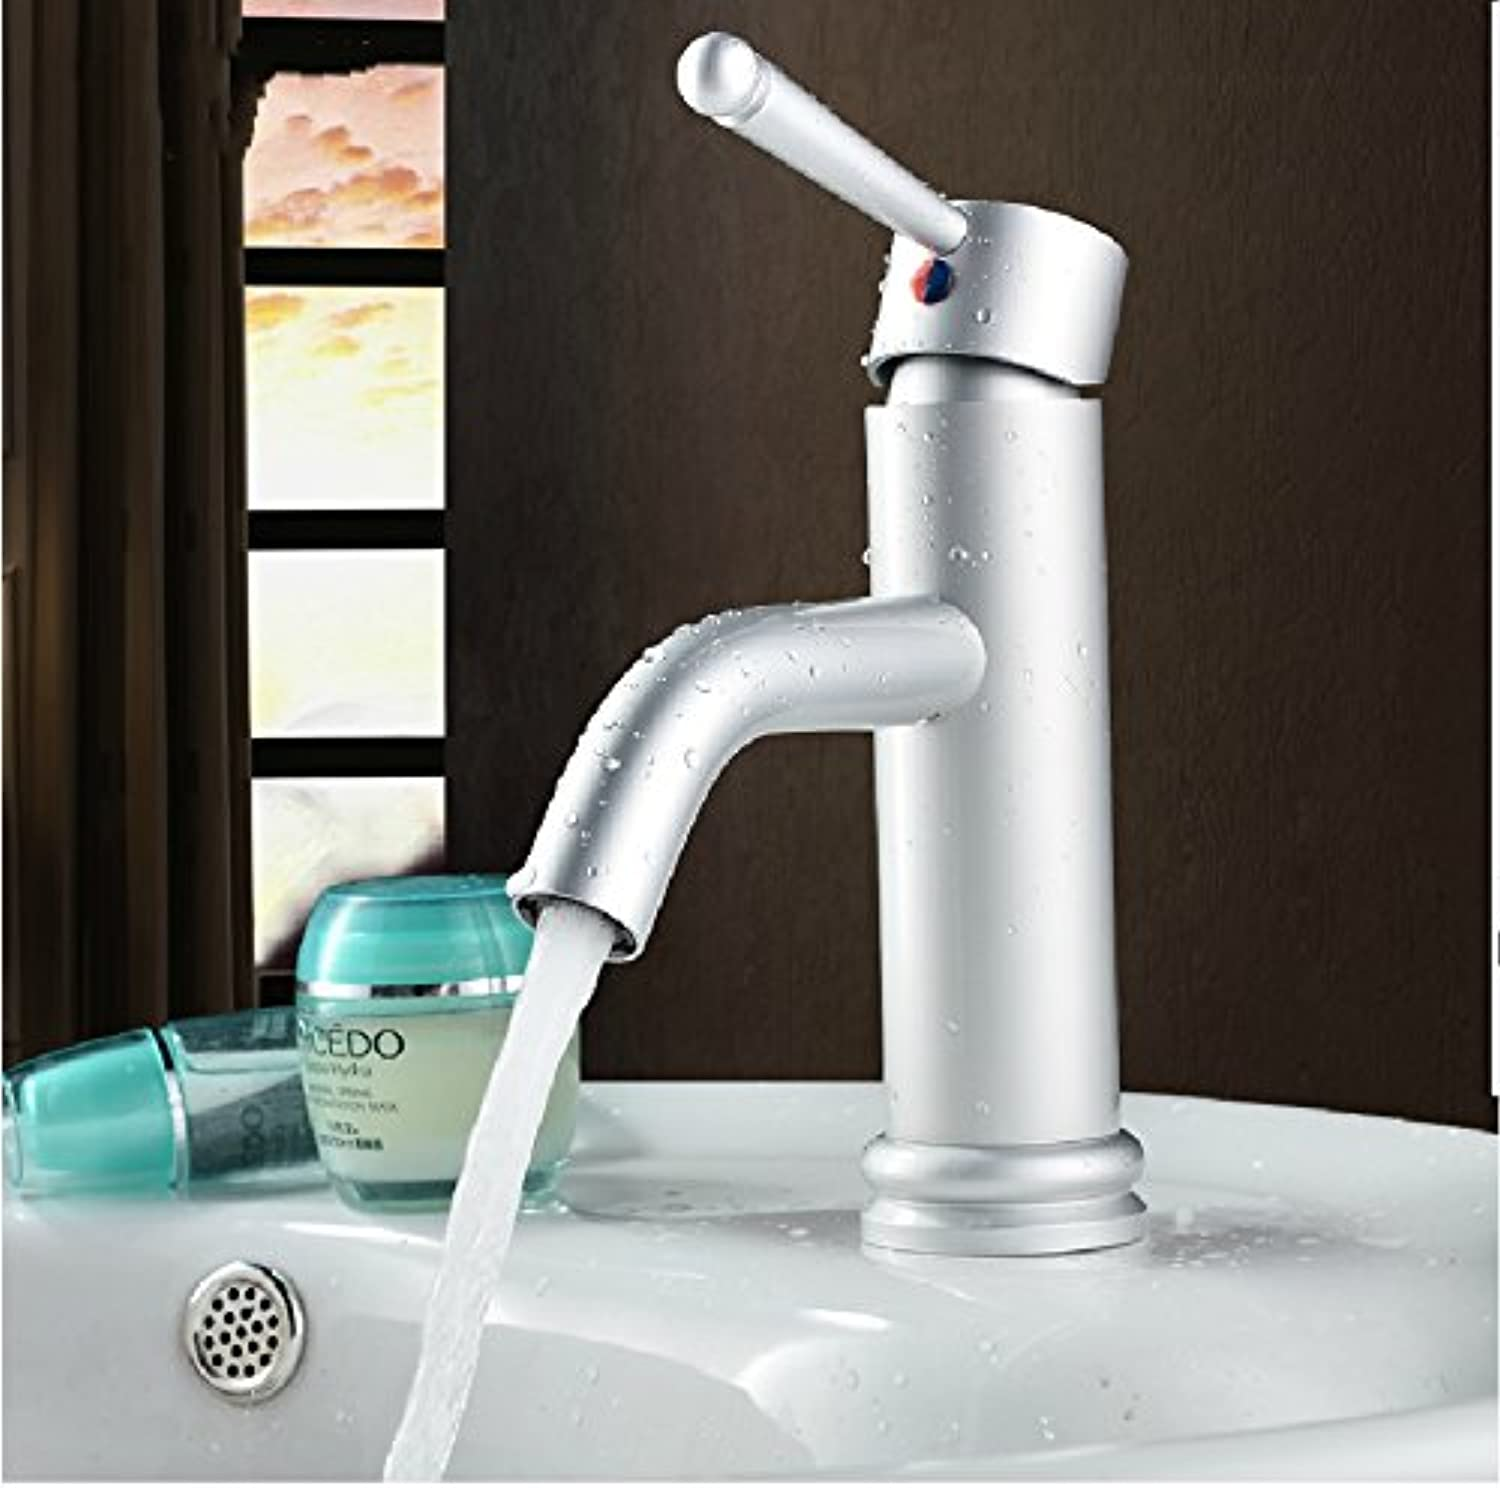 KHSKX- Space Aluminum Lead-Free Cylindrical Dual Cold And Heat Sink Mixer High quality faucets High quality faucets Won'T Rust Bath High quality faucet